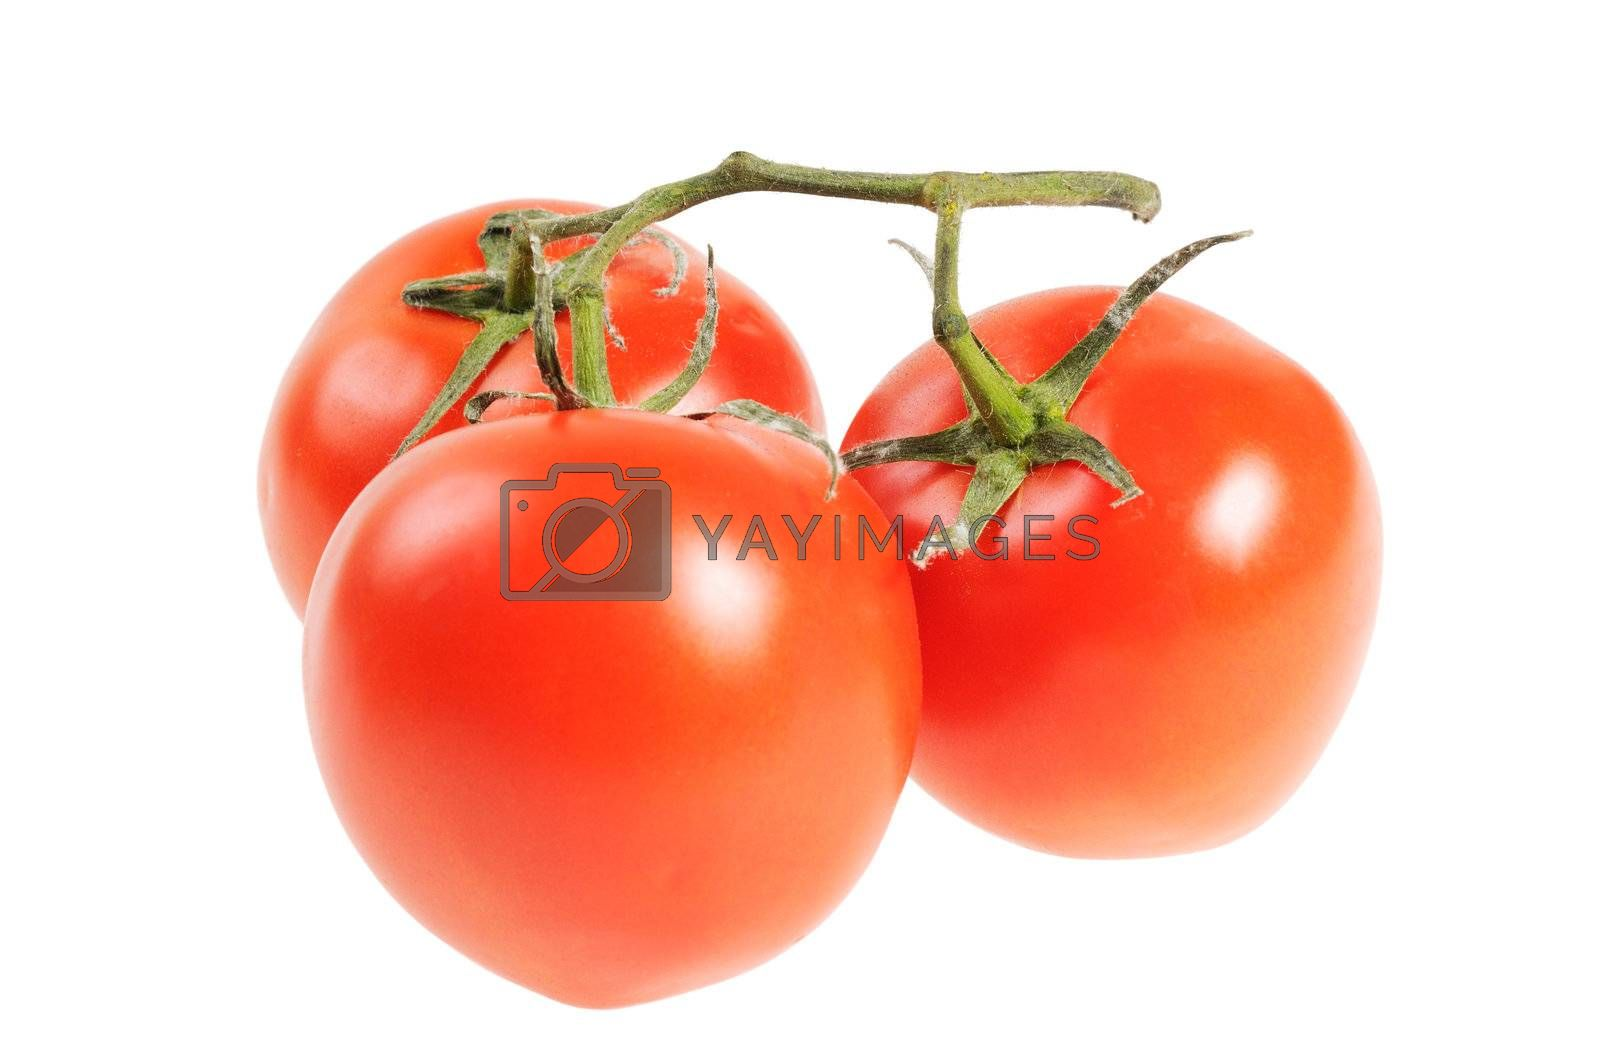 Bunch of three tomatoes on a white background.